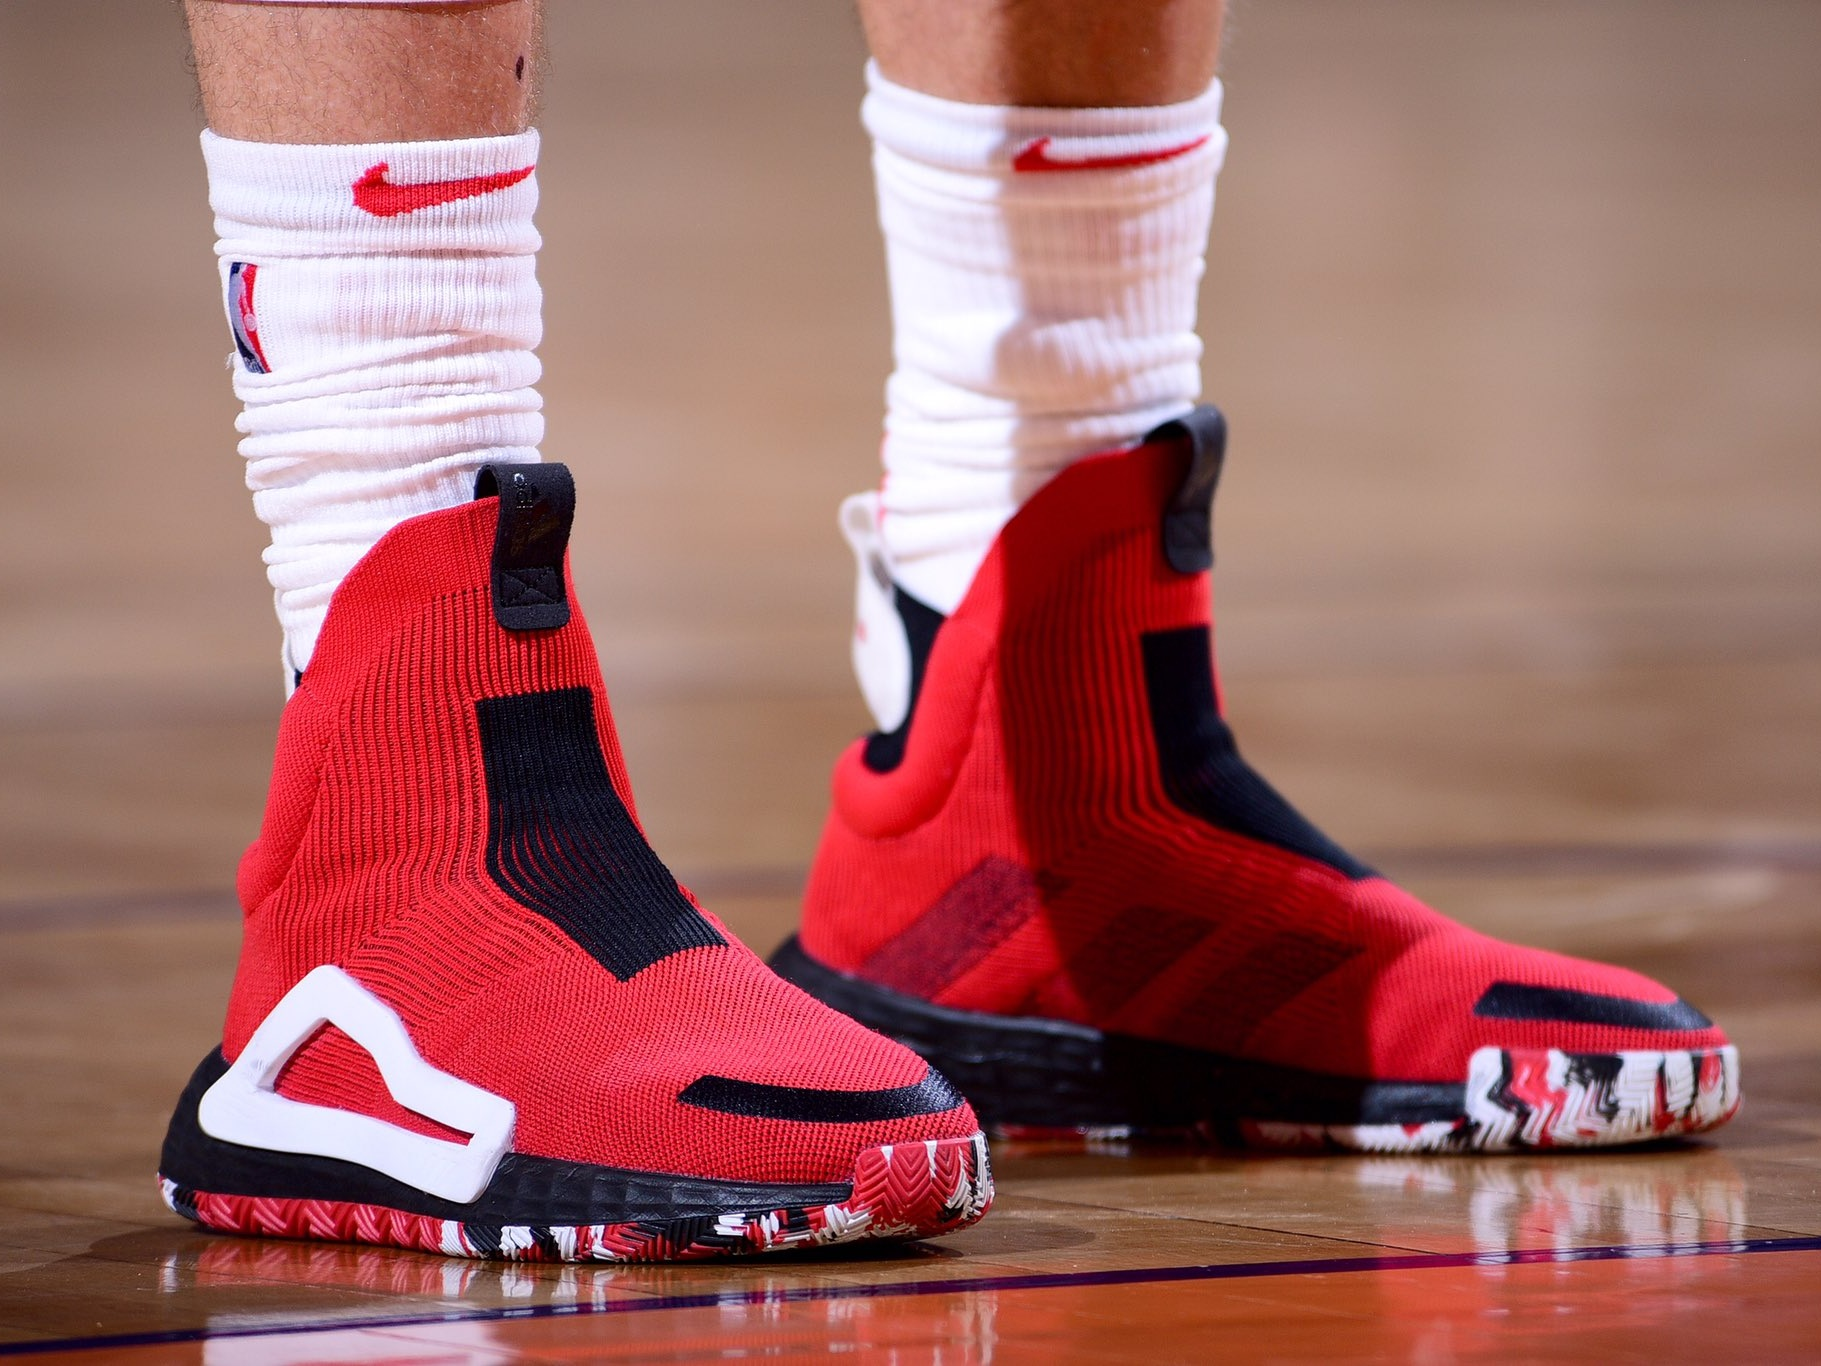 Zach Lavine with the look in the Adidas N3XT L3V3L PE - Chicago Bulls vs. Phoenix Suns | March 18, 201917 Points7 Assists8 Rebounds1 Steal5-10 Shooting